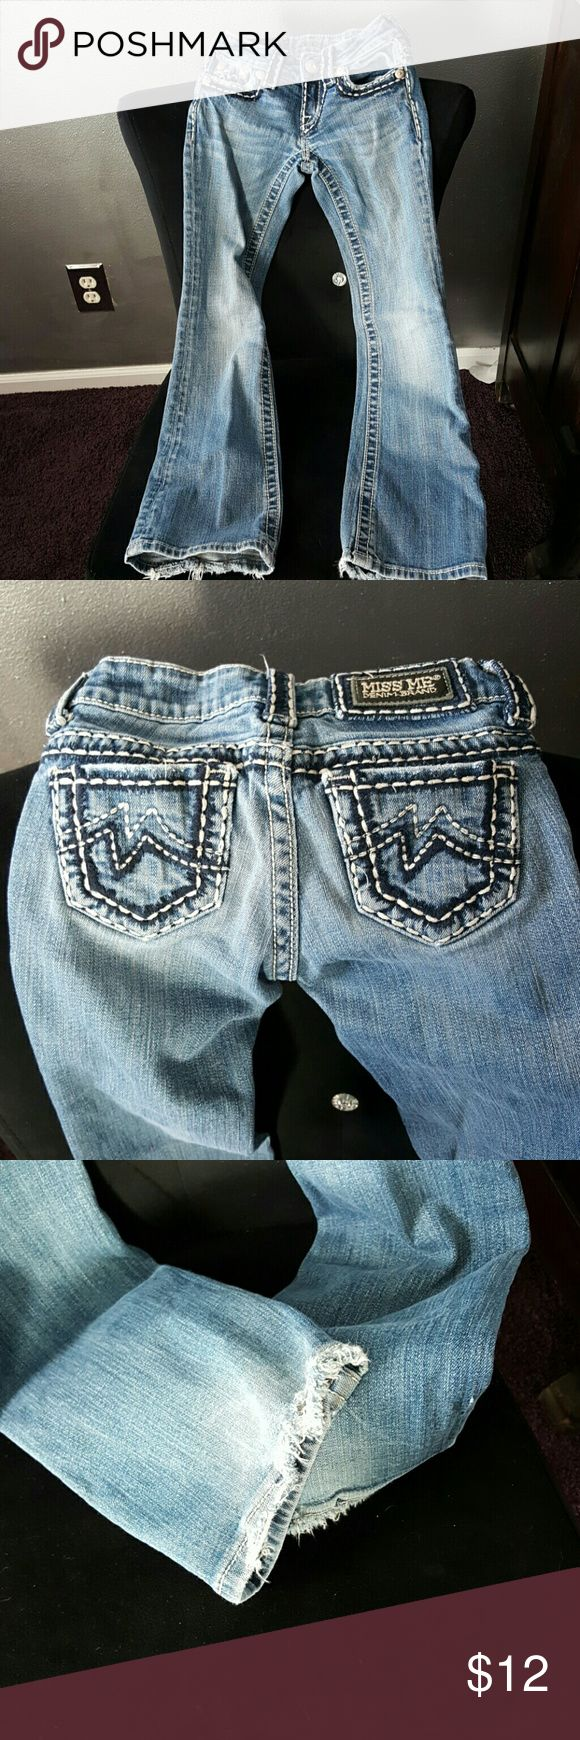 little girls Miss Me jeans size 7. have some wear The hem has the grunge look. Miss Me Bottoms Jeans